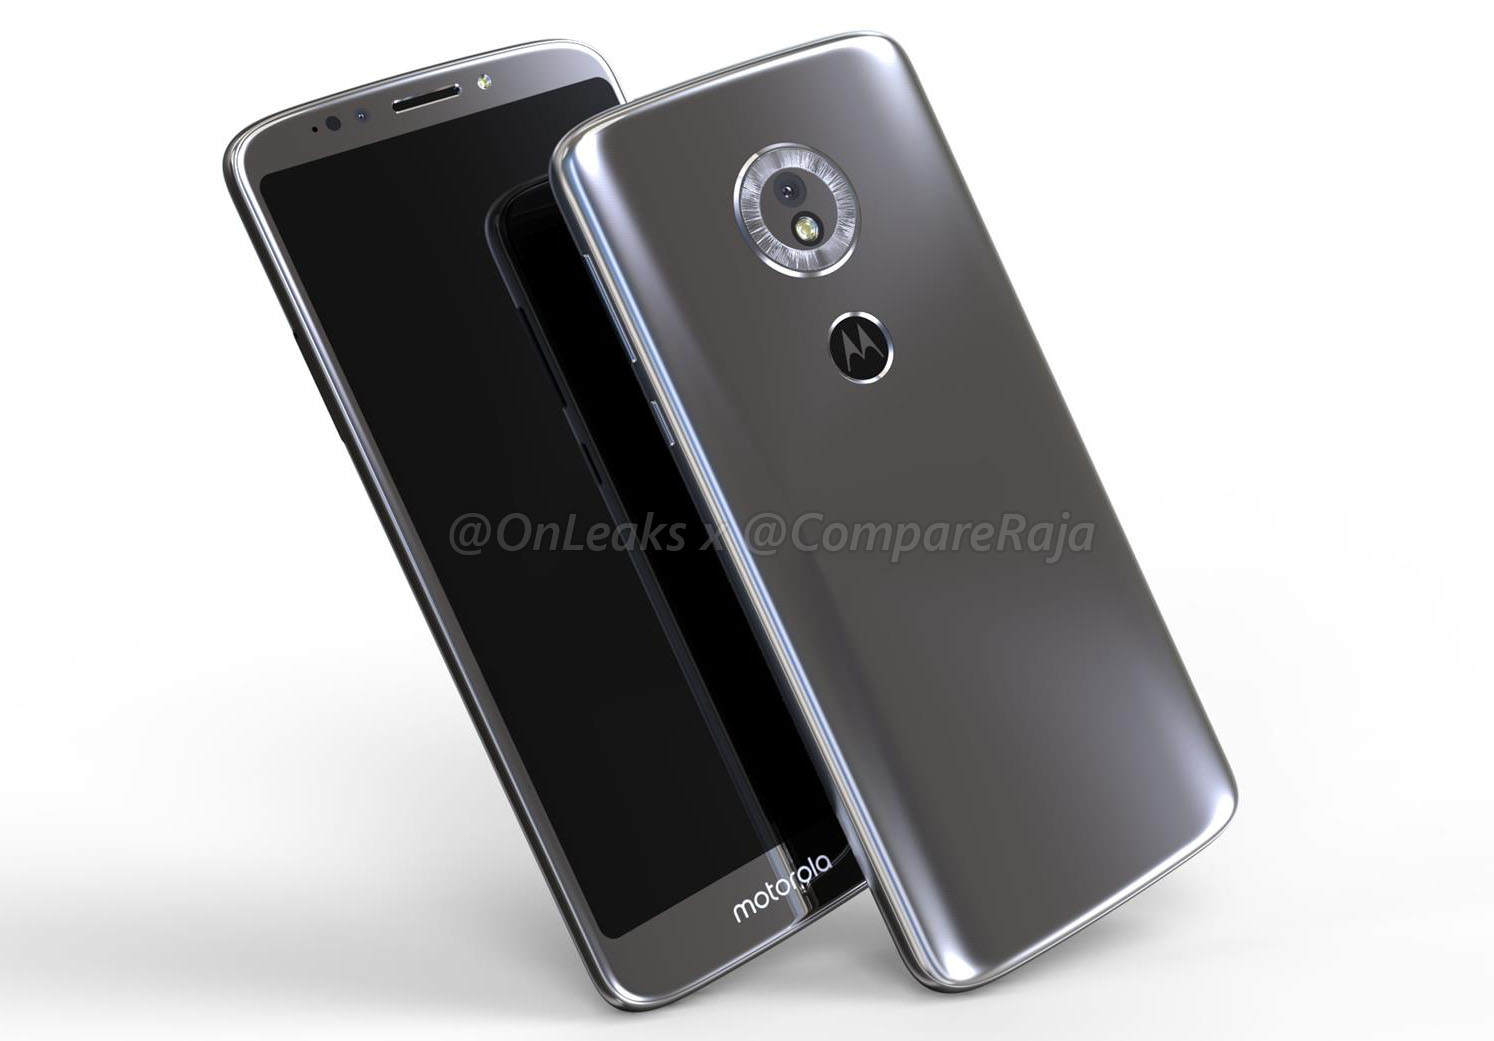 [EXCLUSIVE]: Moto G6 Play Leaked Again in 3D Renders